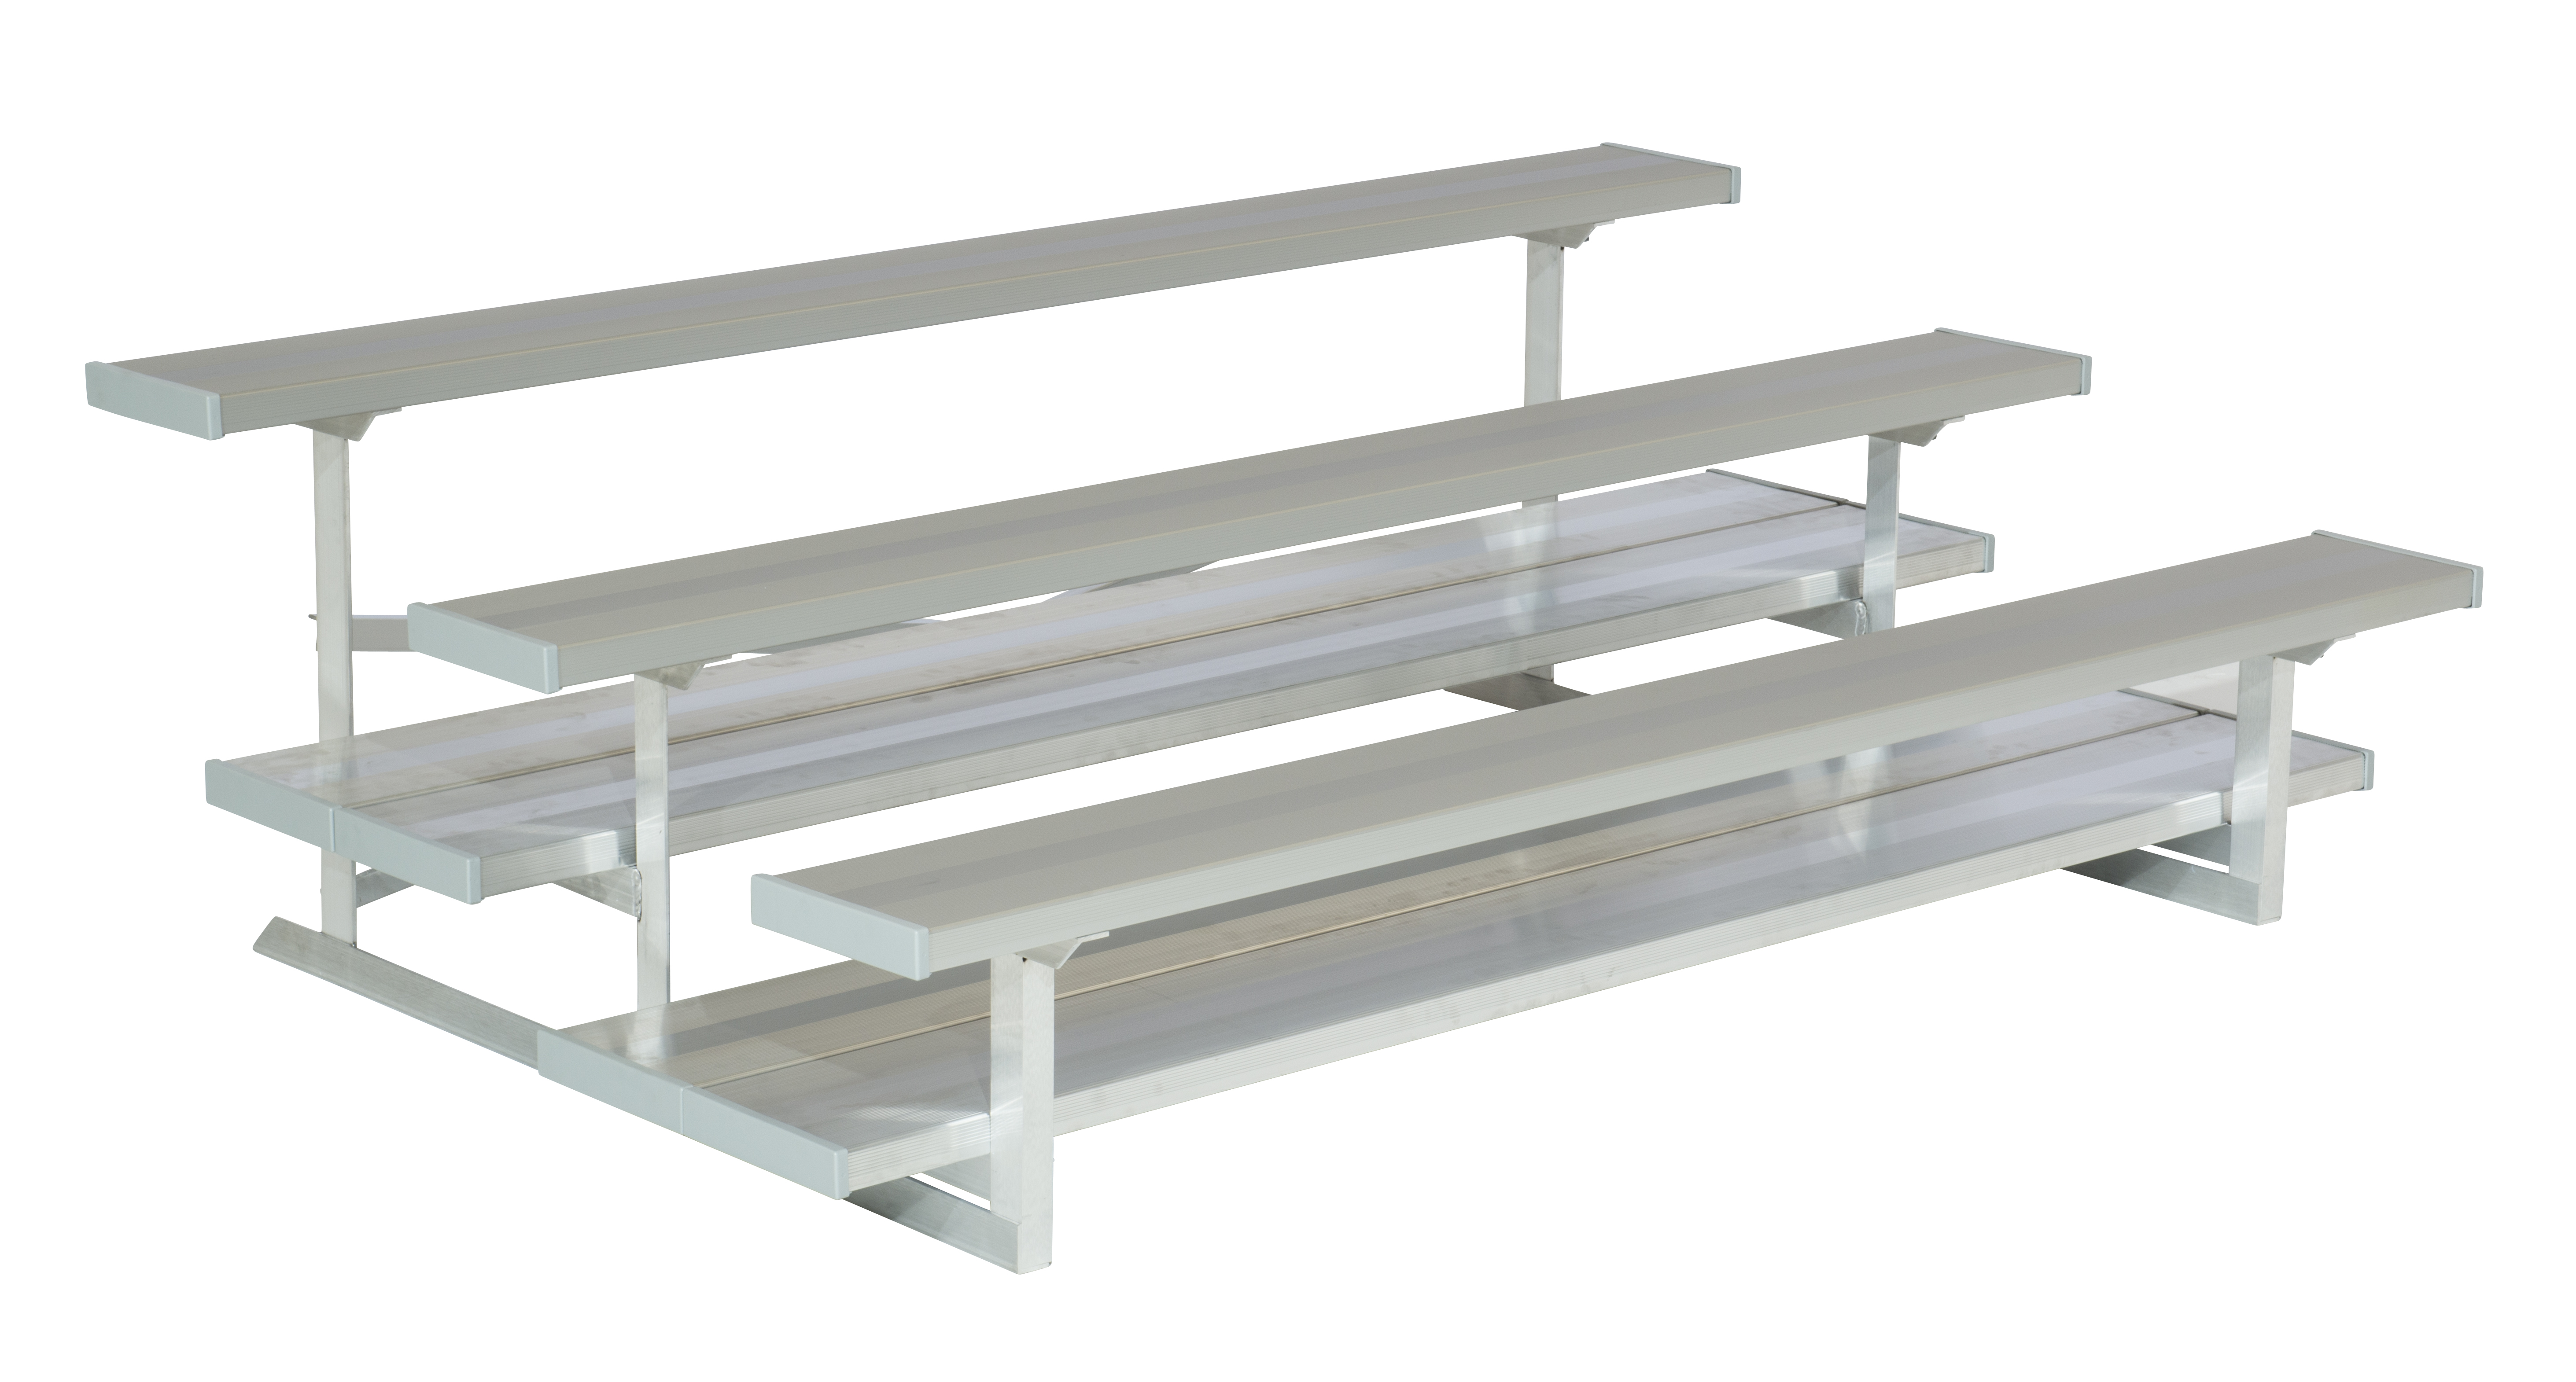 3 row aluminum bleachers